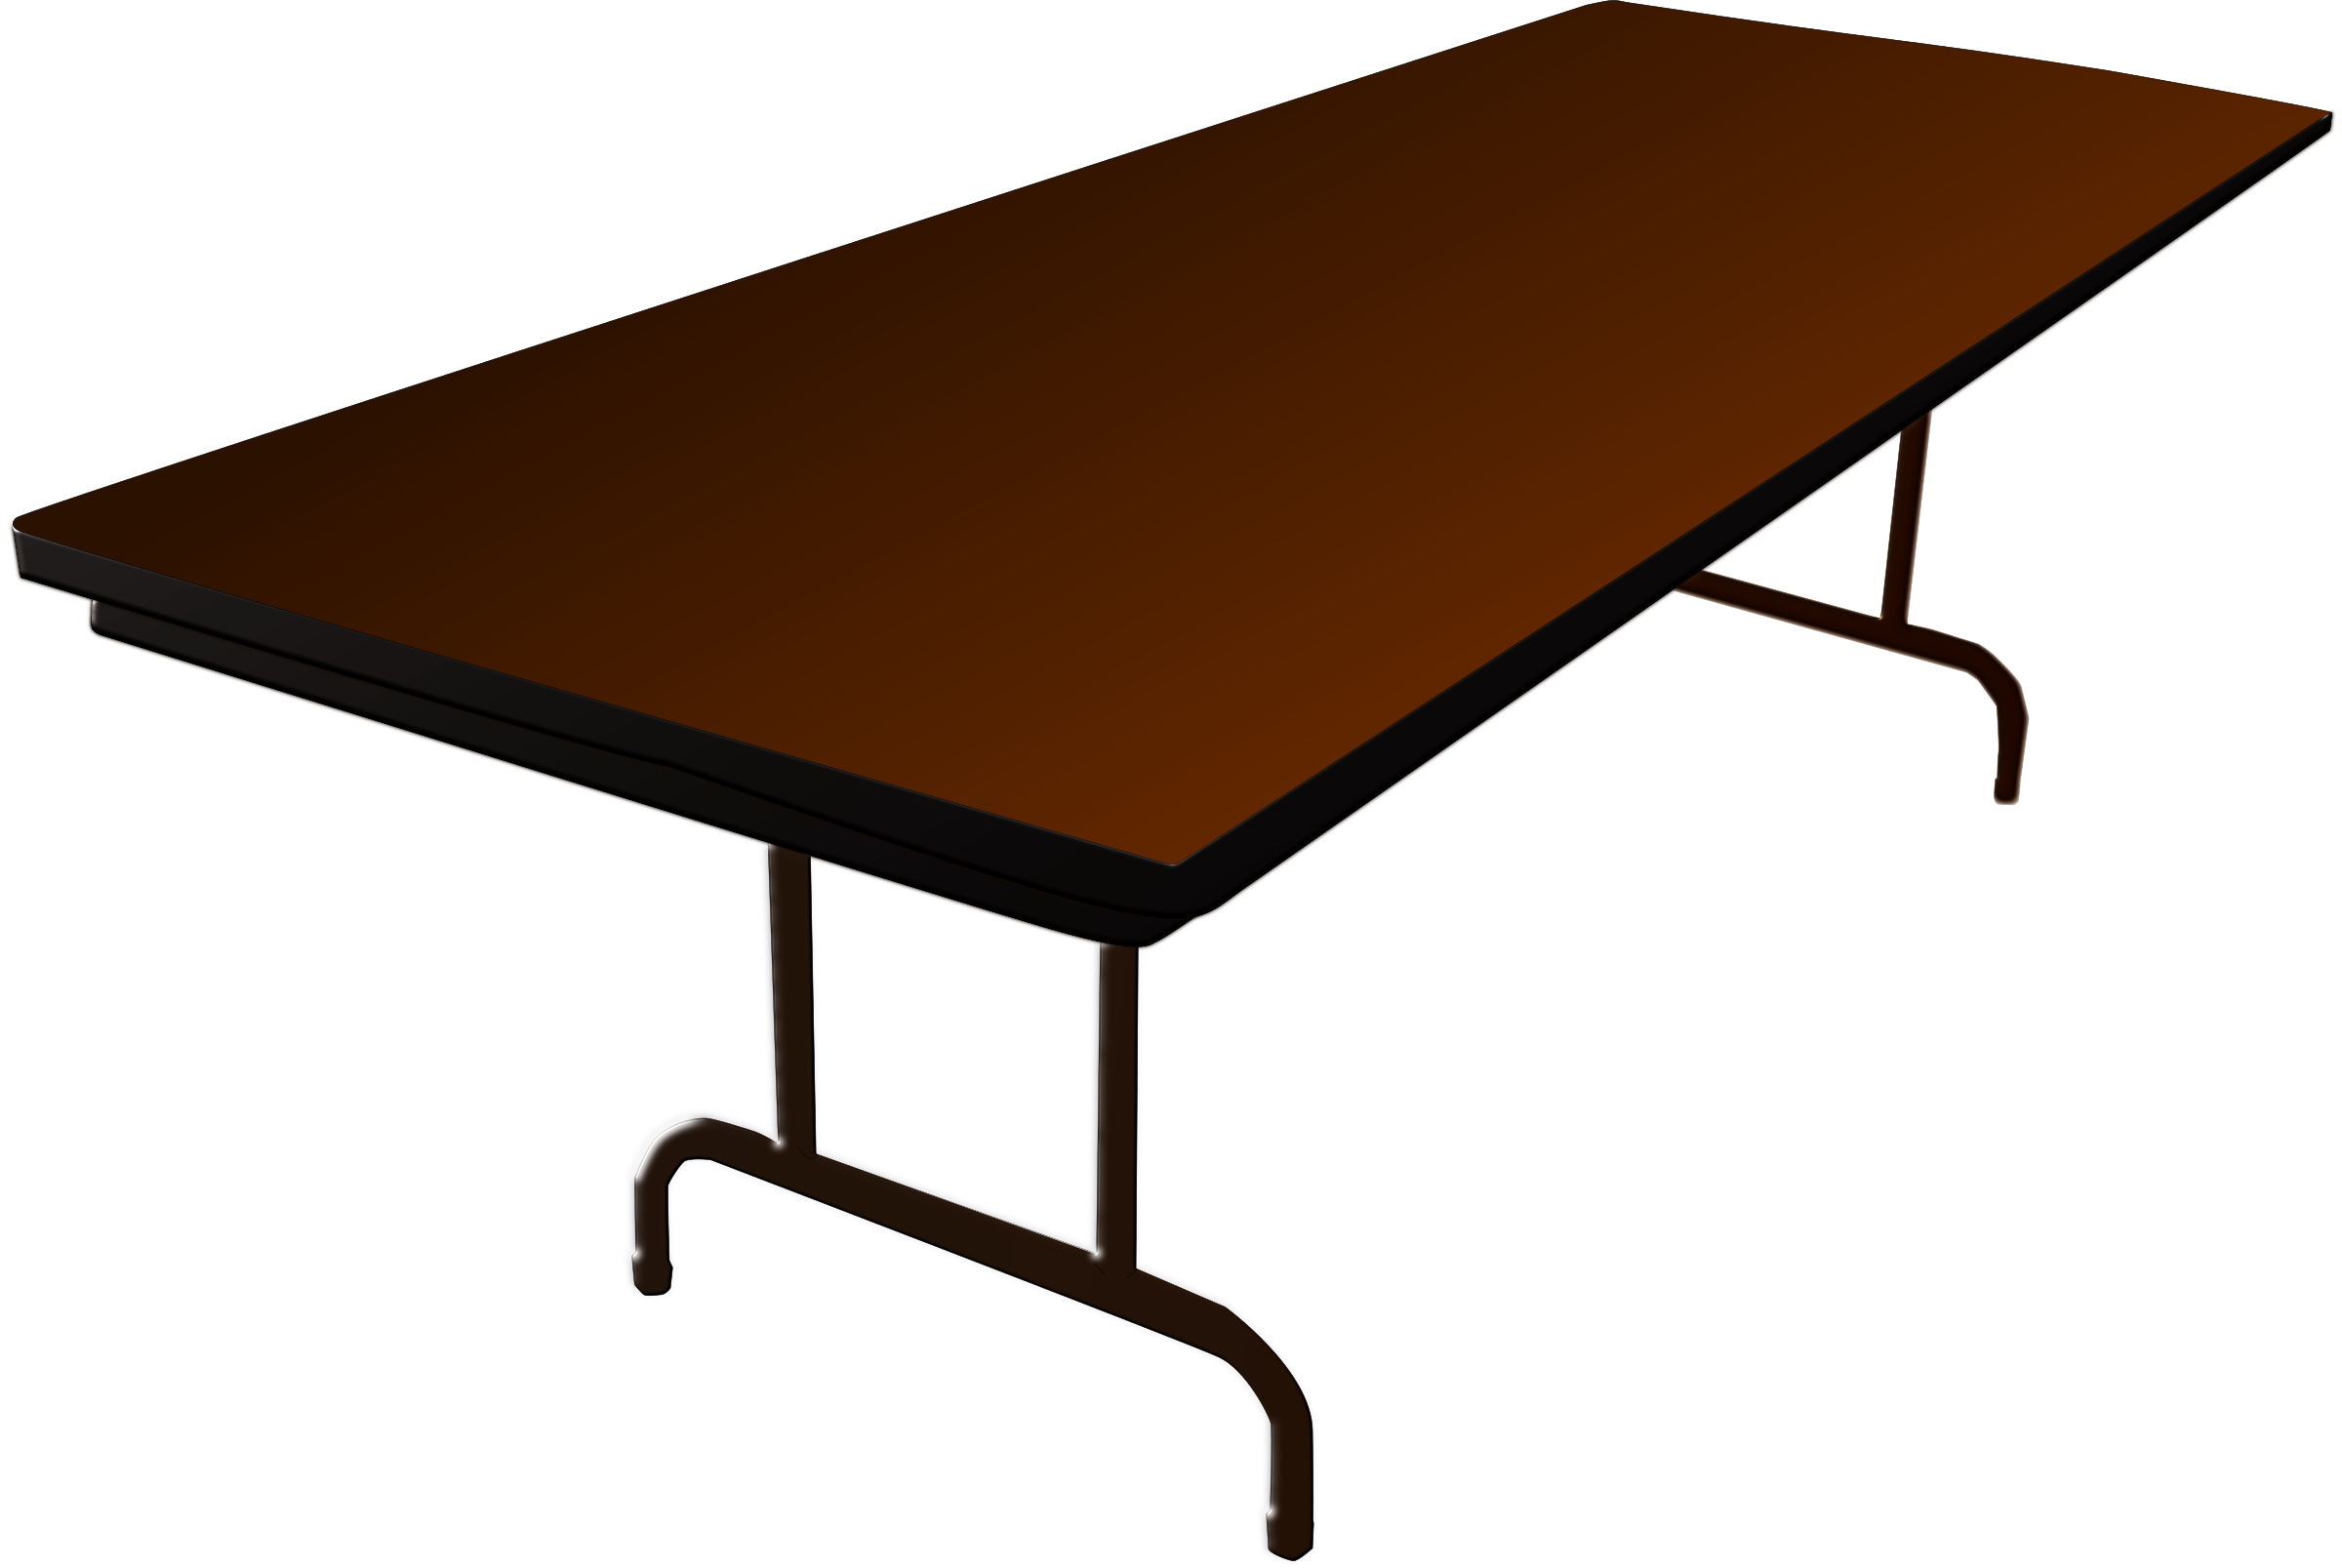 Elegant rectangle onlyhereonlynow com. Desk clipart square table